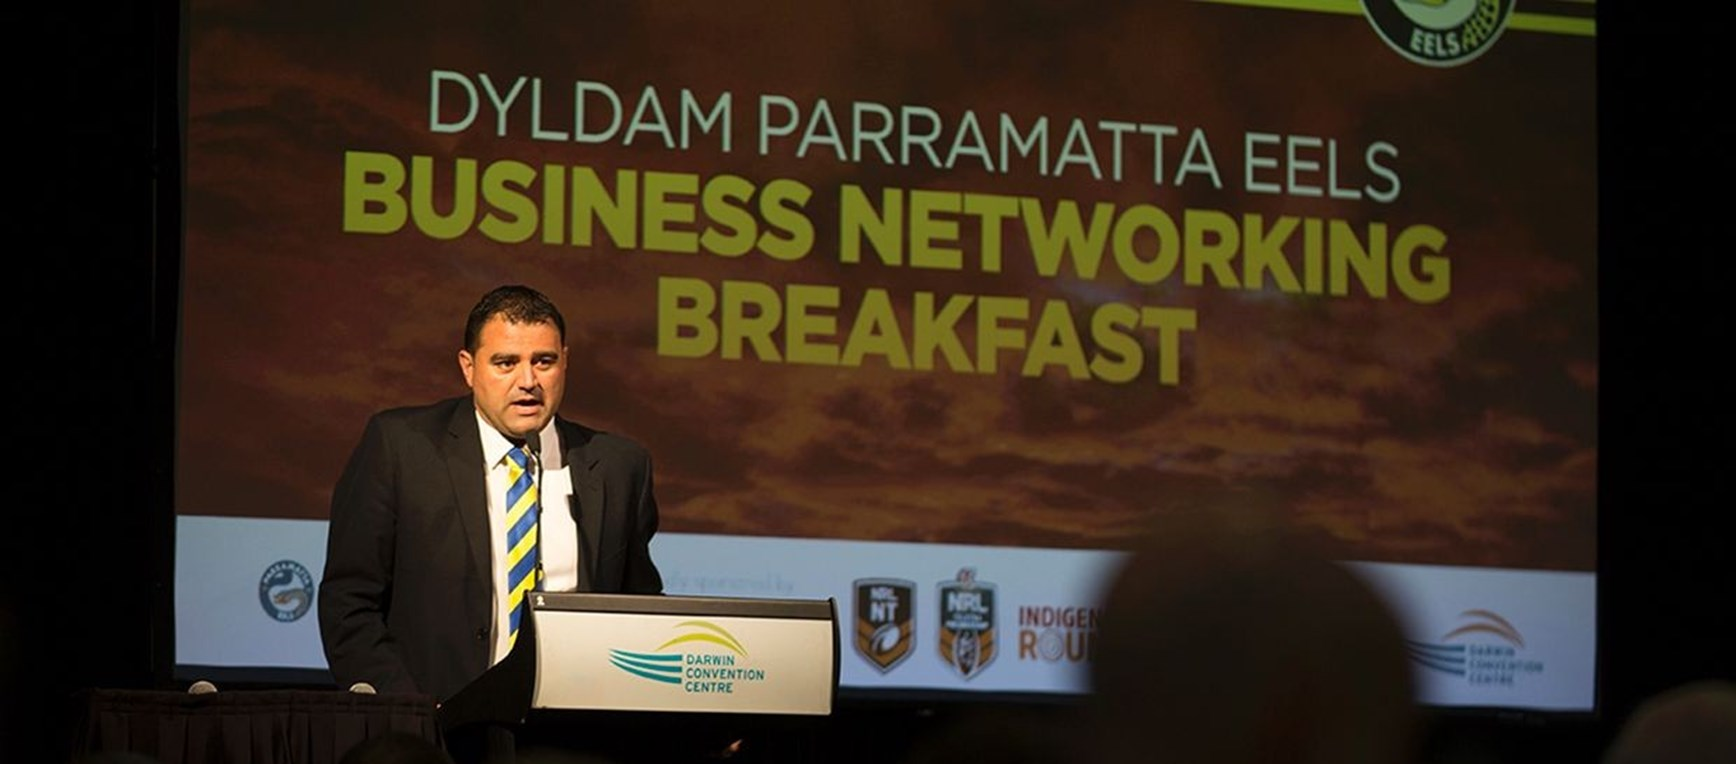 Eels Business Networking Breakfast